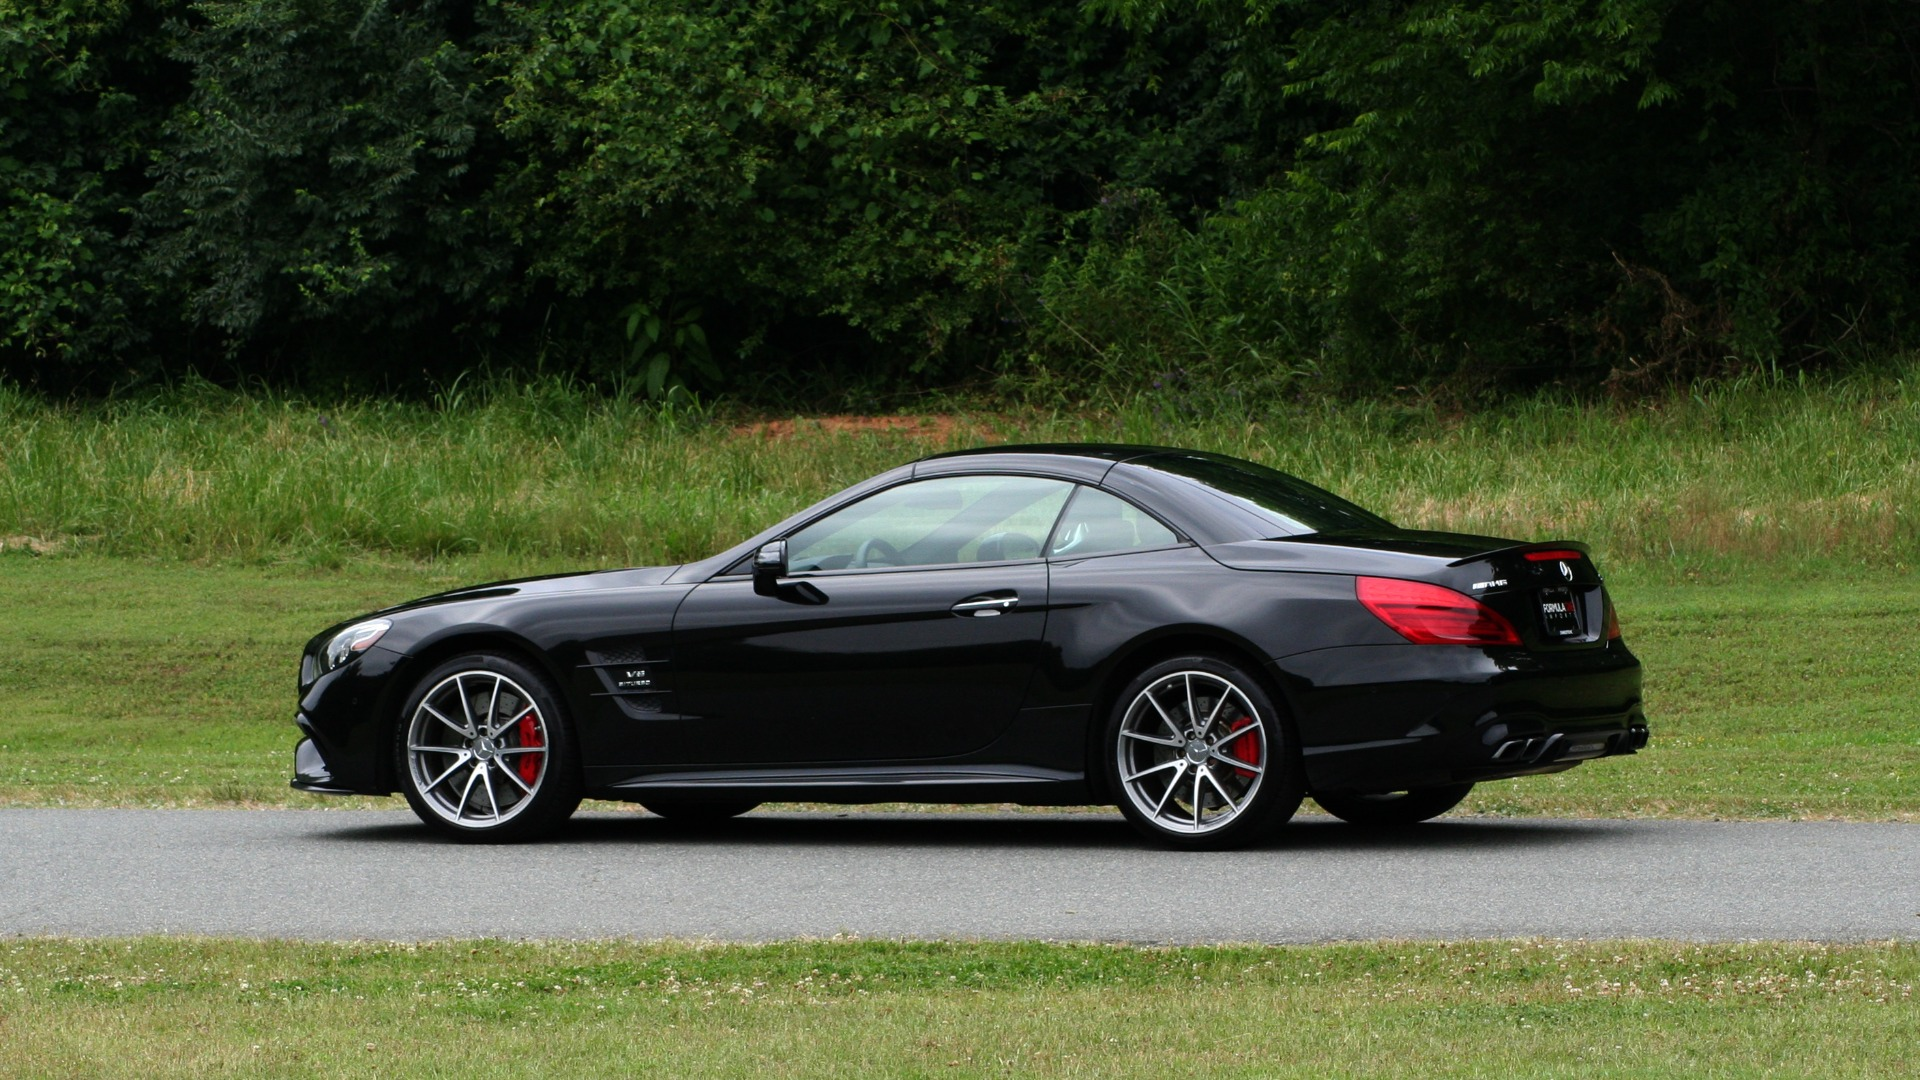 Used 2017 Mercedes-Benz SL 63 AMG / ROADSTER / DRIVER ASSIST / NAV / CAMERA for sale Sold at Formula Imports in Charlotte NC 28227 17